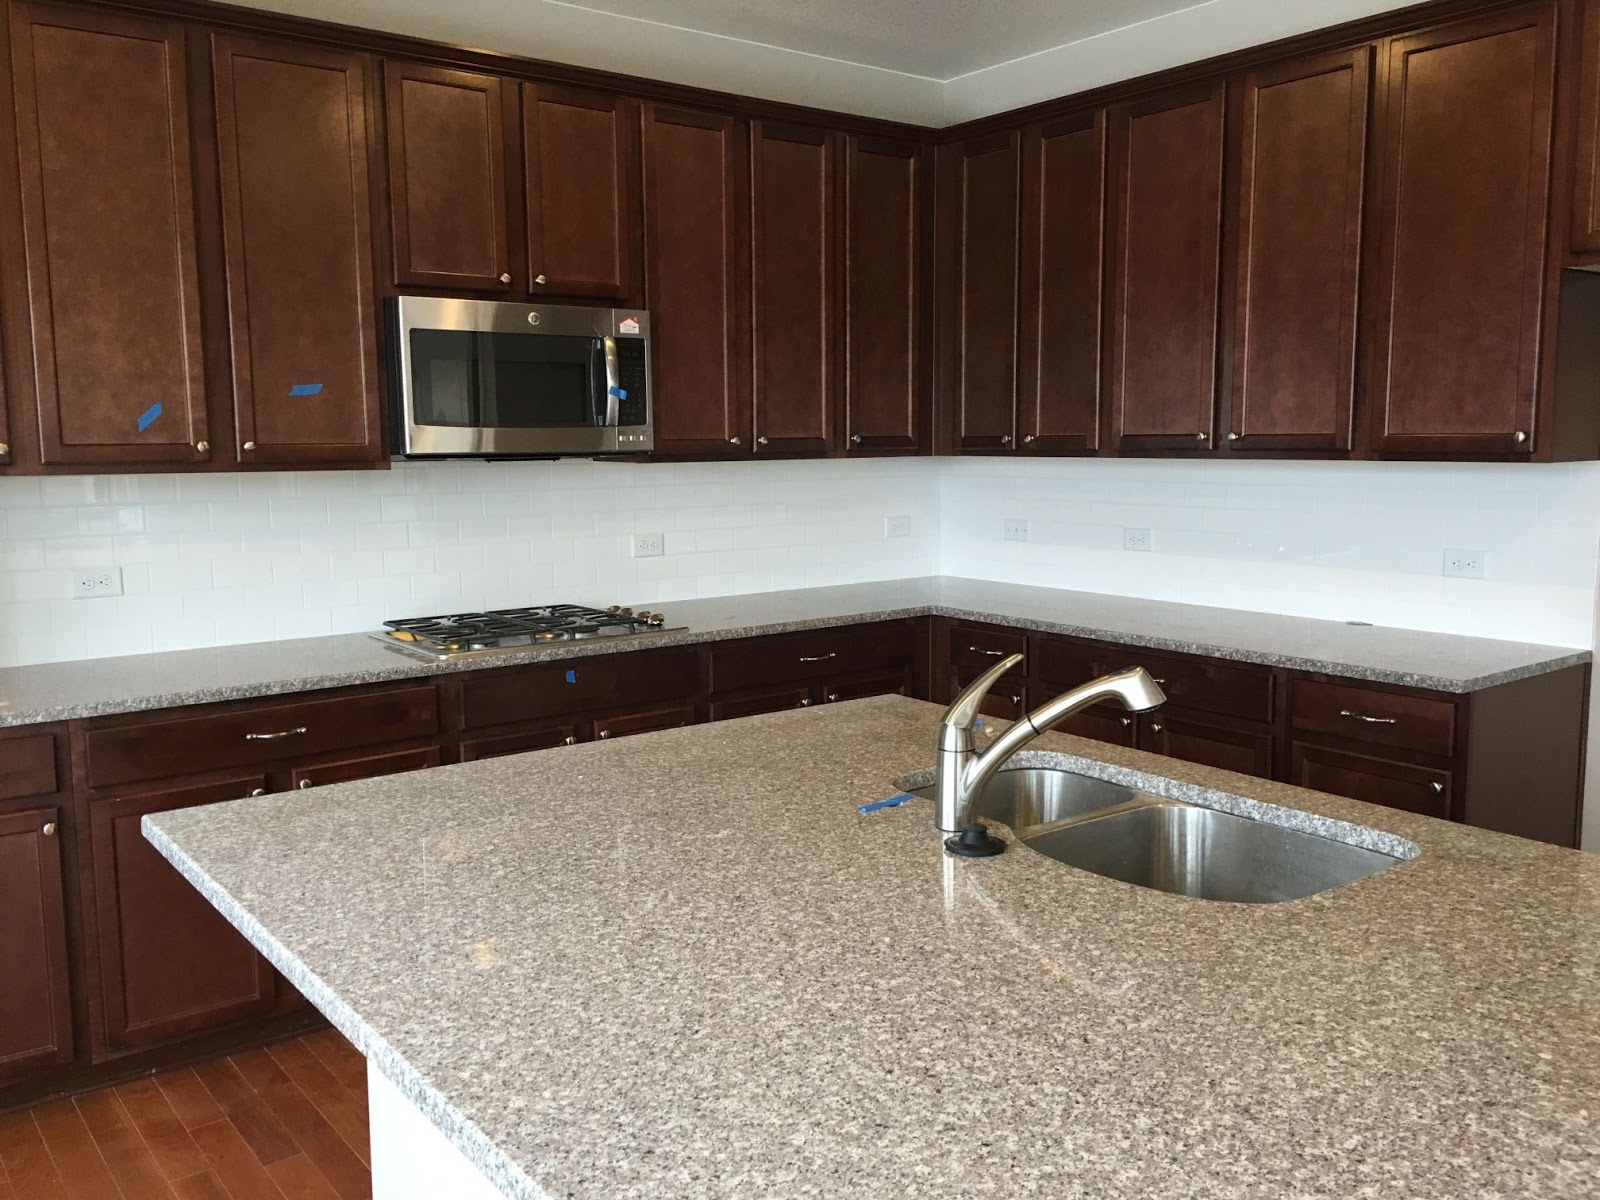 Bainbrook Brown Granite With Dark Cabinets. Advantage Bainbrook Brown  Granite Countertops